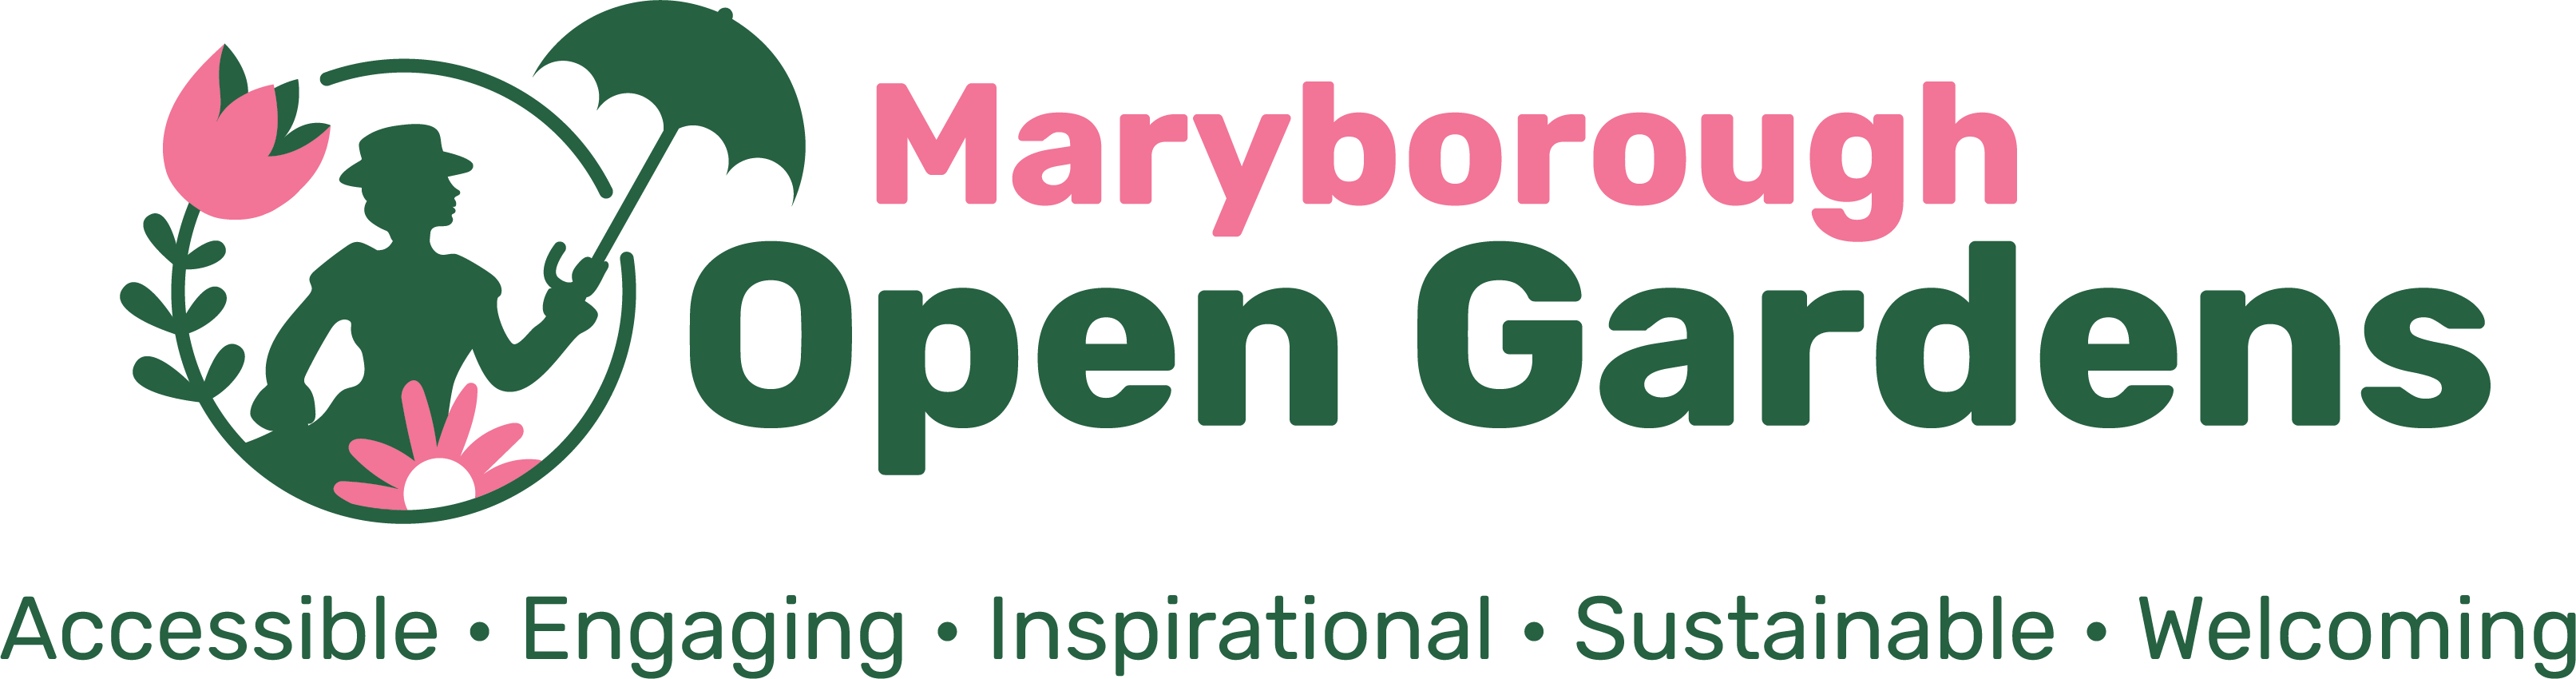 Maryborough Open Gardens